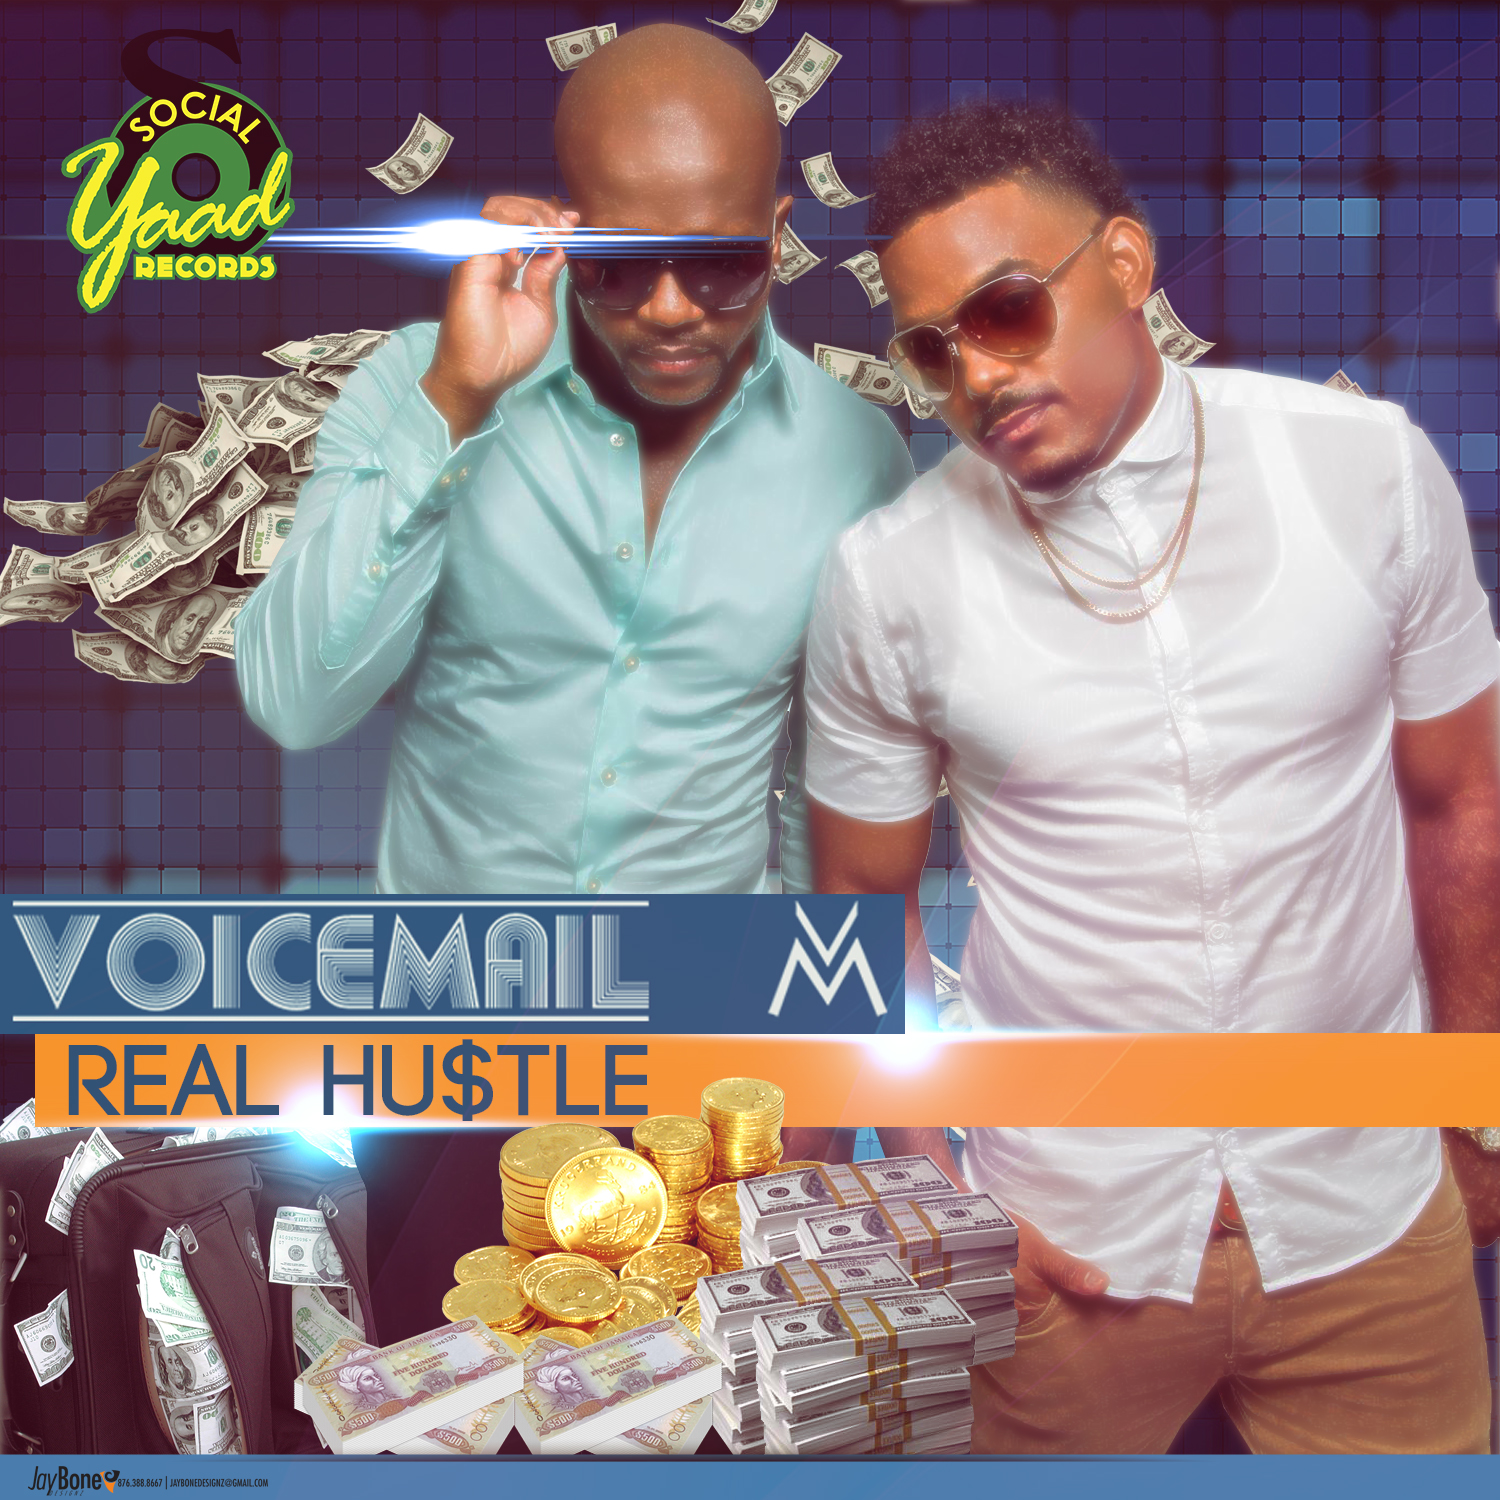 VOICEMAIL – REAL HUSTLE – (MAIN MIX, TV MIX & INSTRUMENTAL) – SOCIALYAAD RECORDS